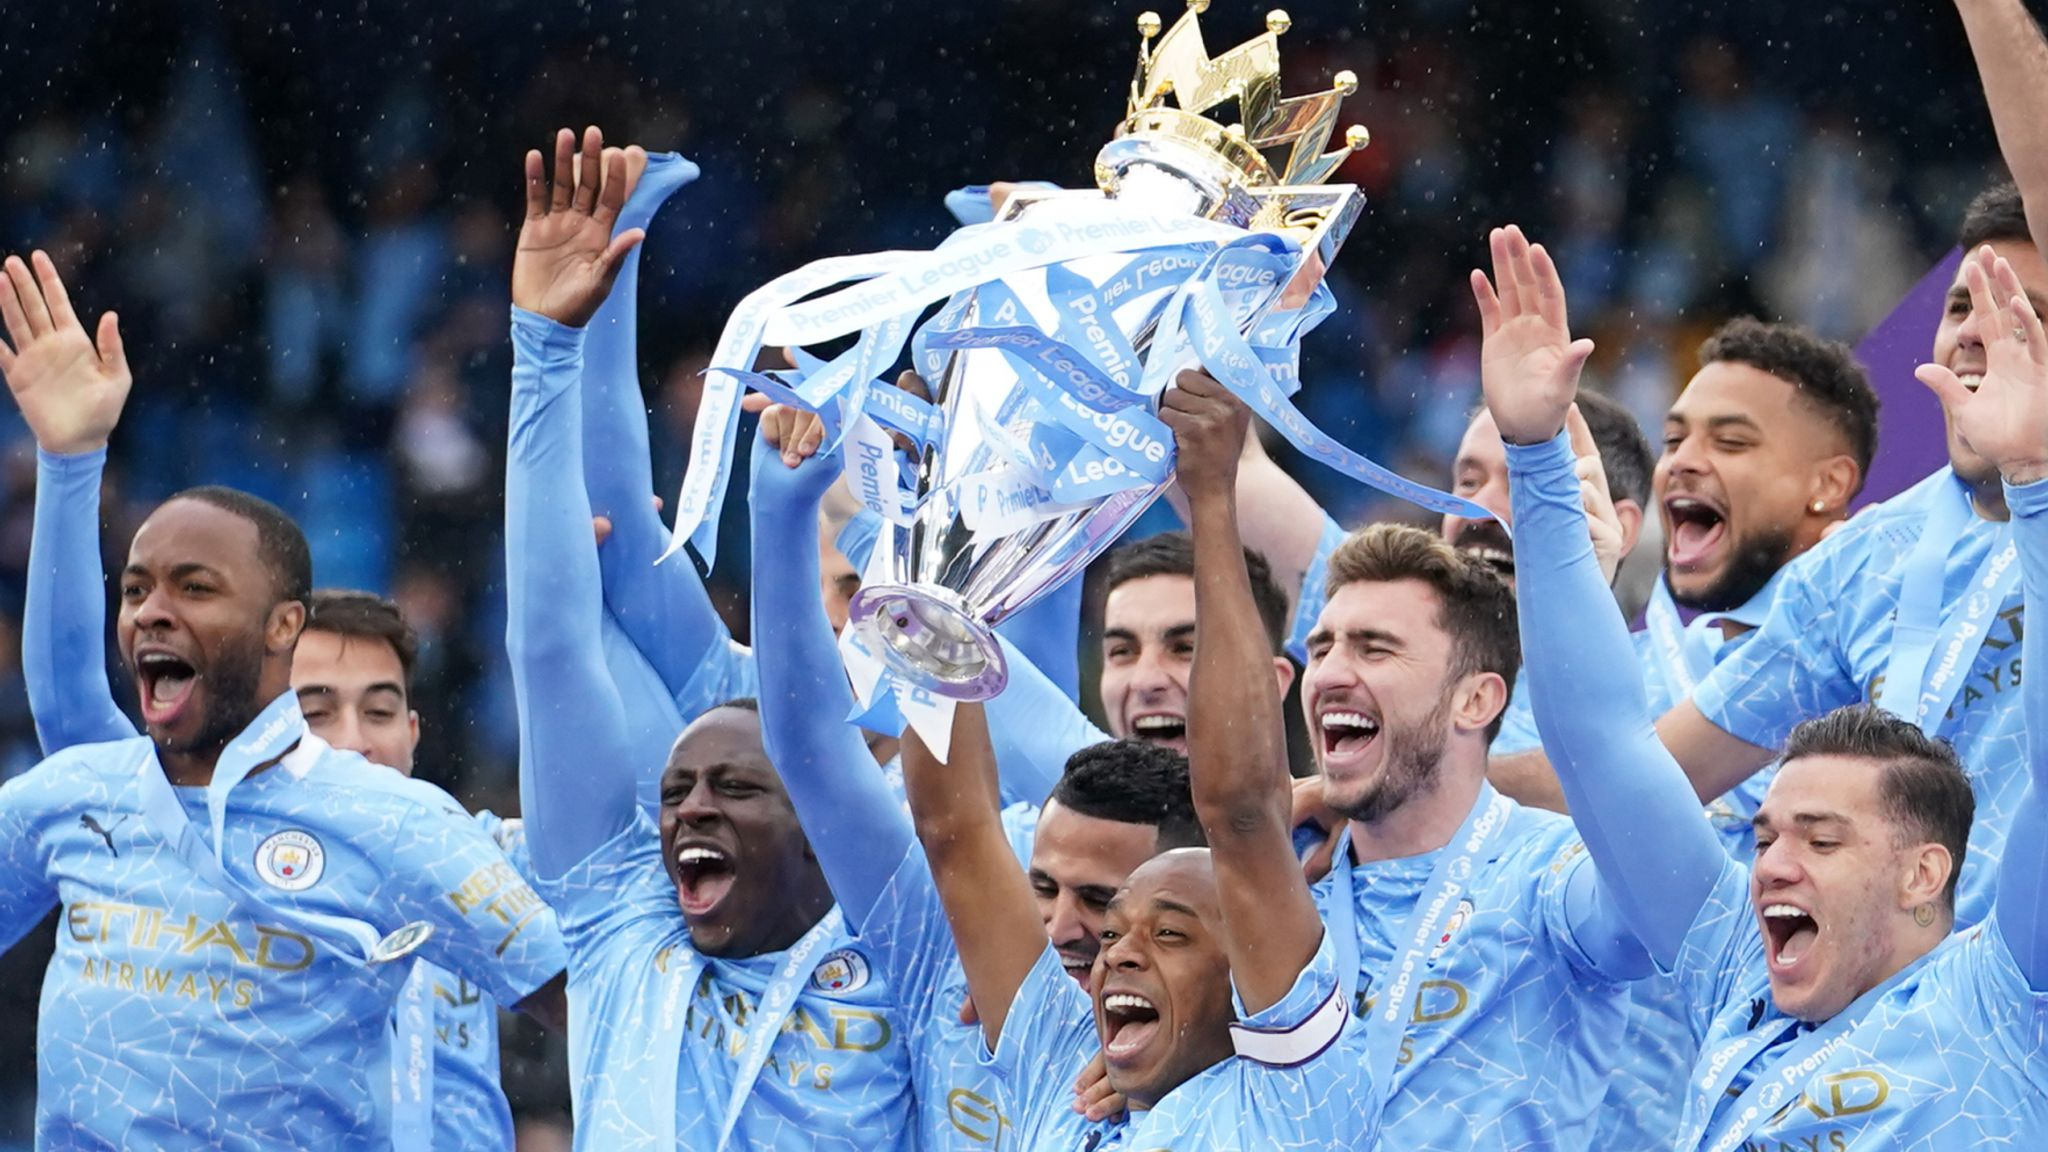 Premier League fixtures for 2021/22 season set to be released at 9am on Wednesday